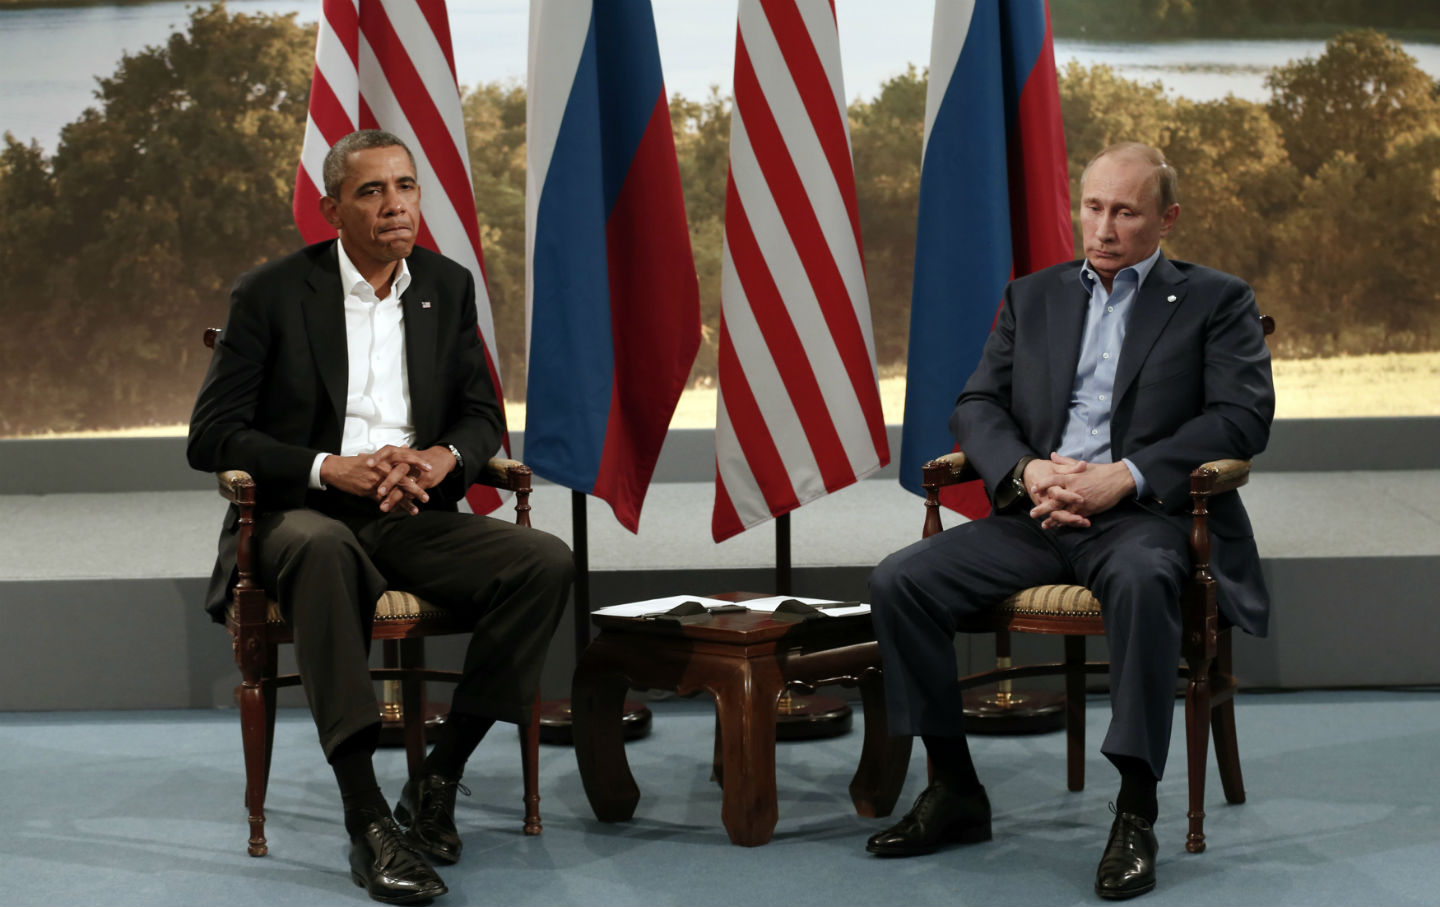 President Obama meets with Vladimir Putin at the G8 Summit.